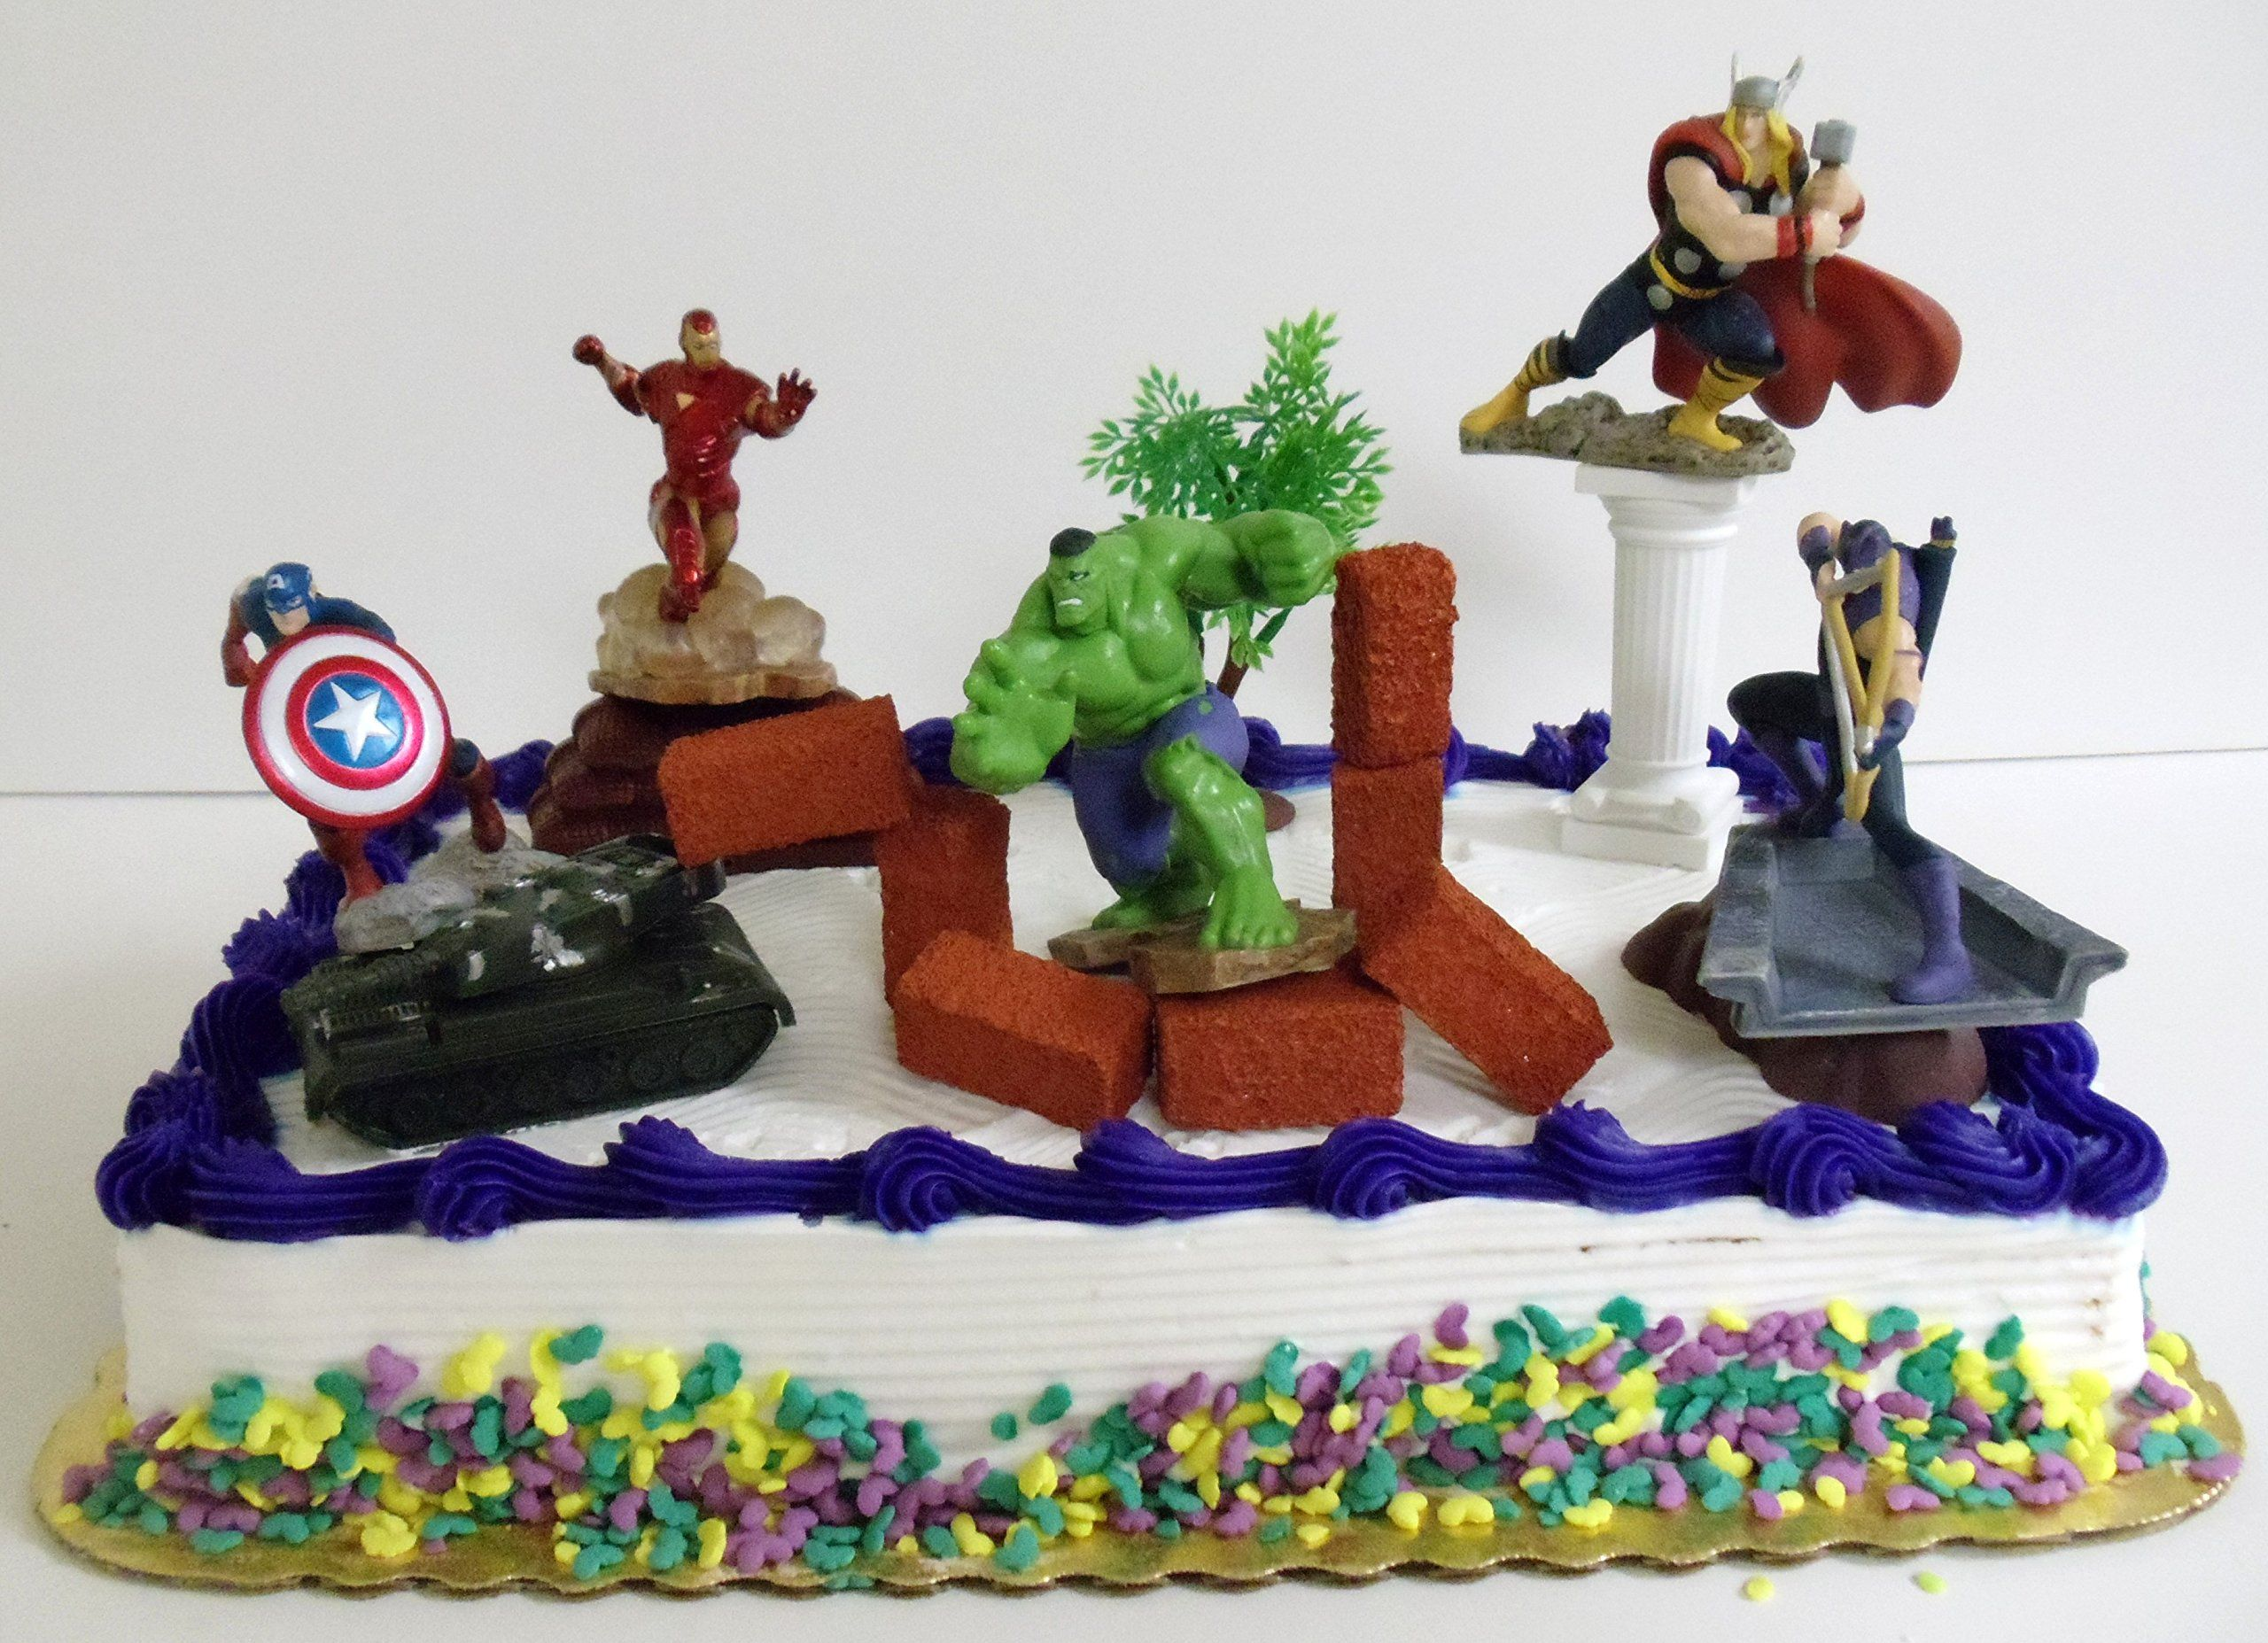 Avengers 15 piece birthday cake topper set featuring